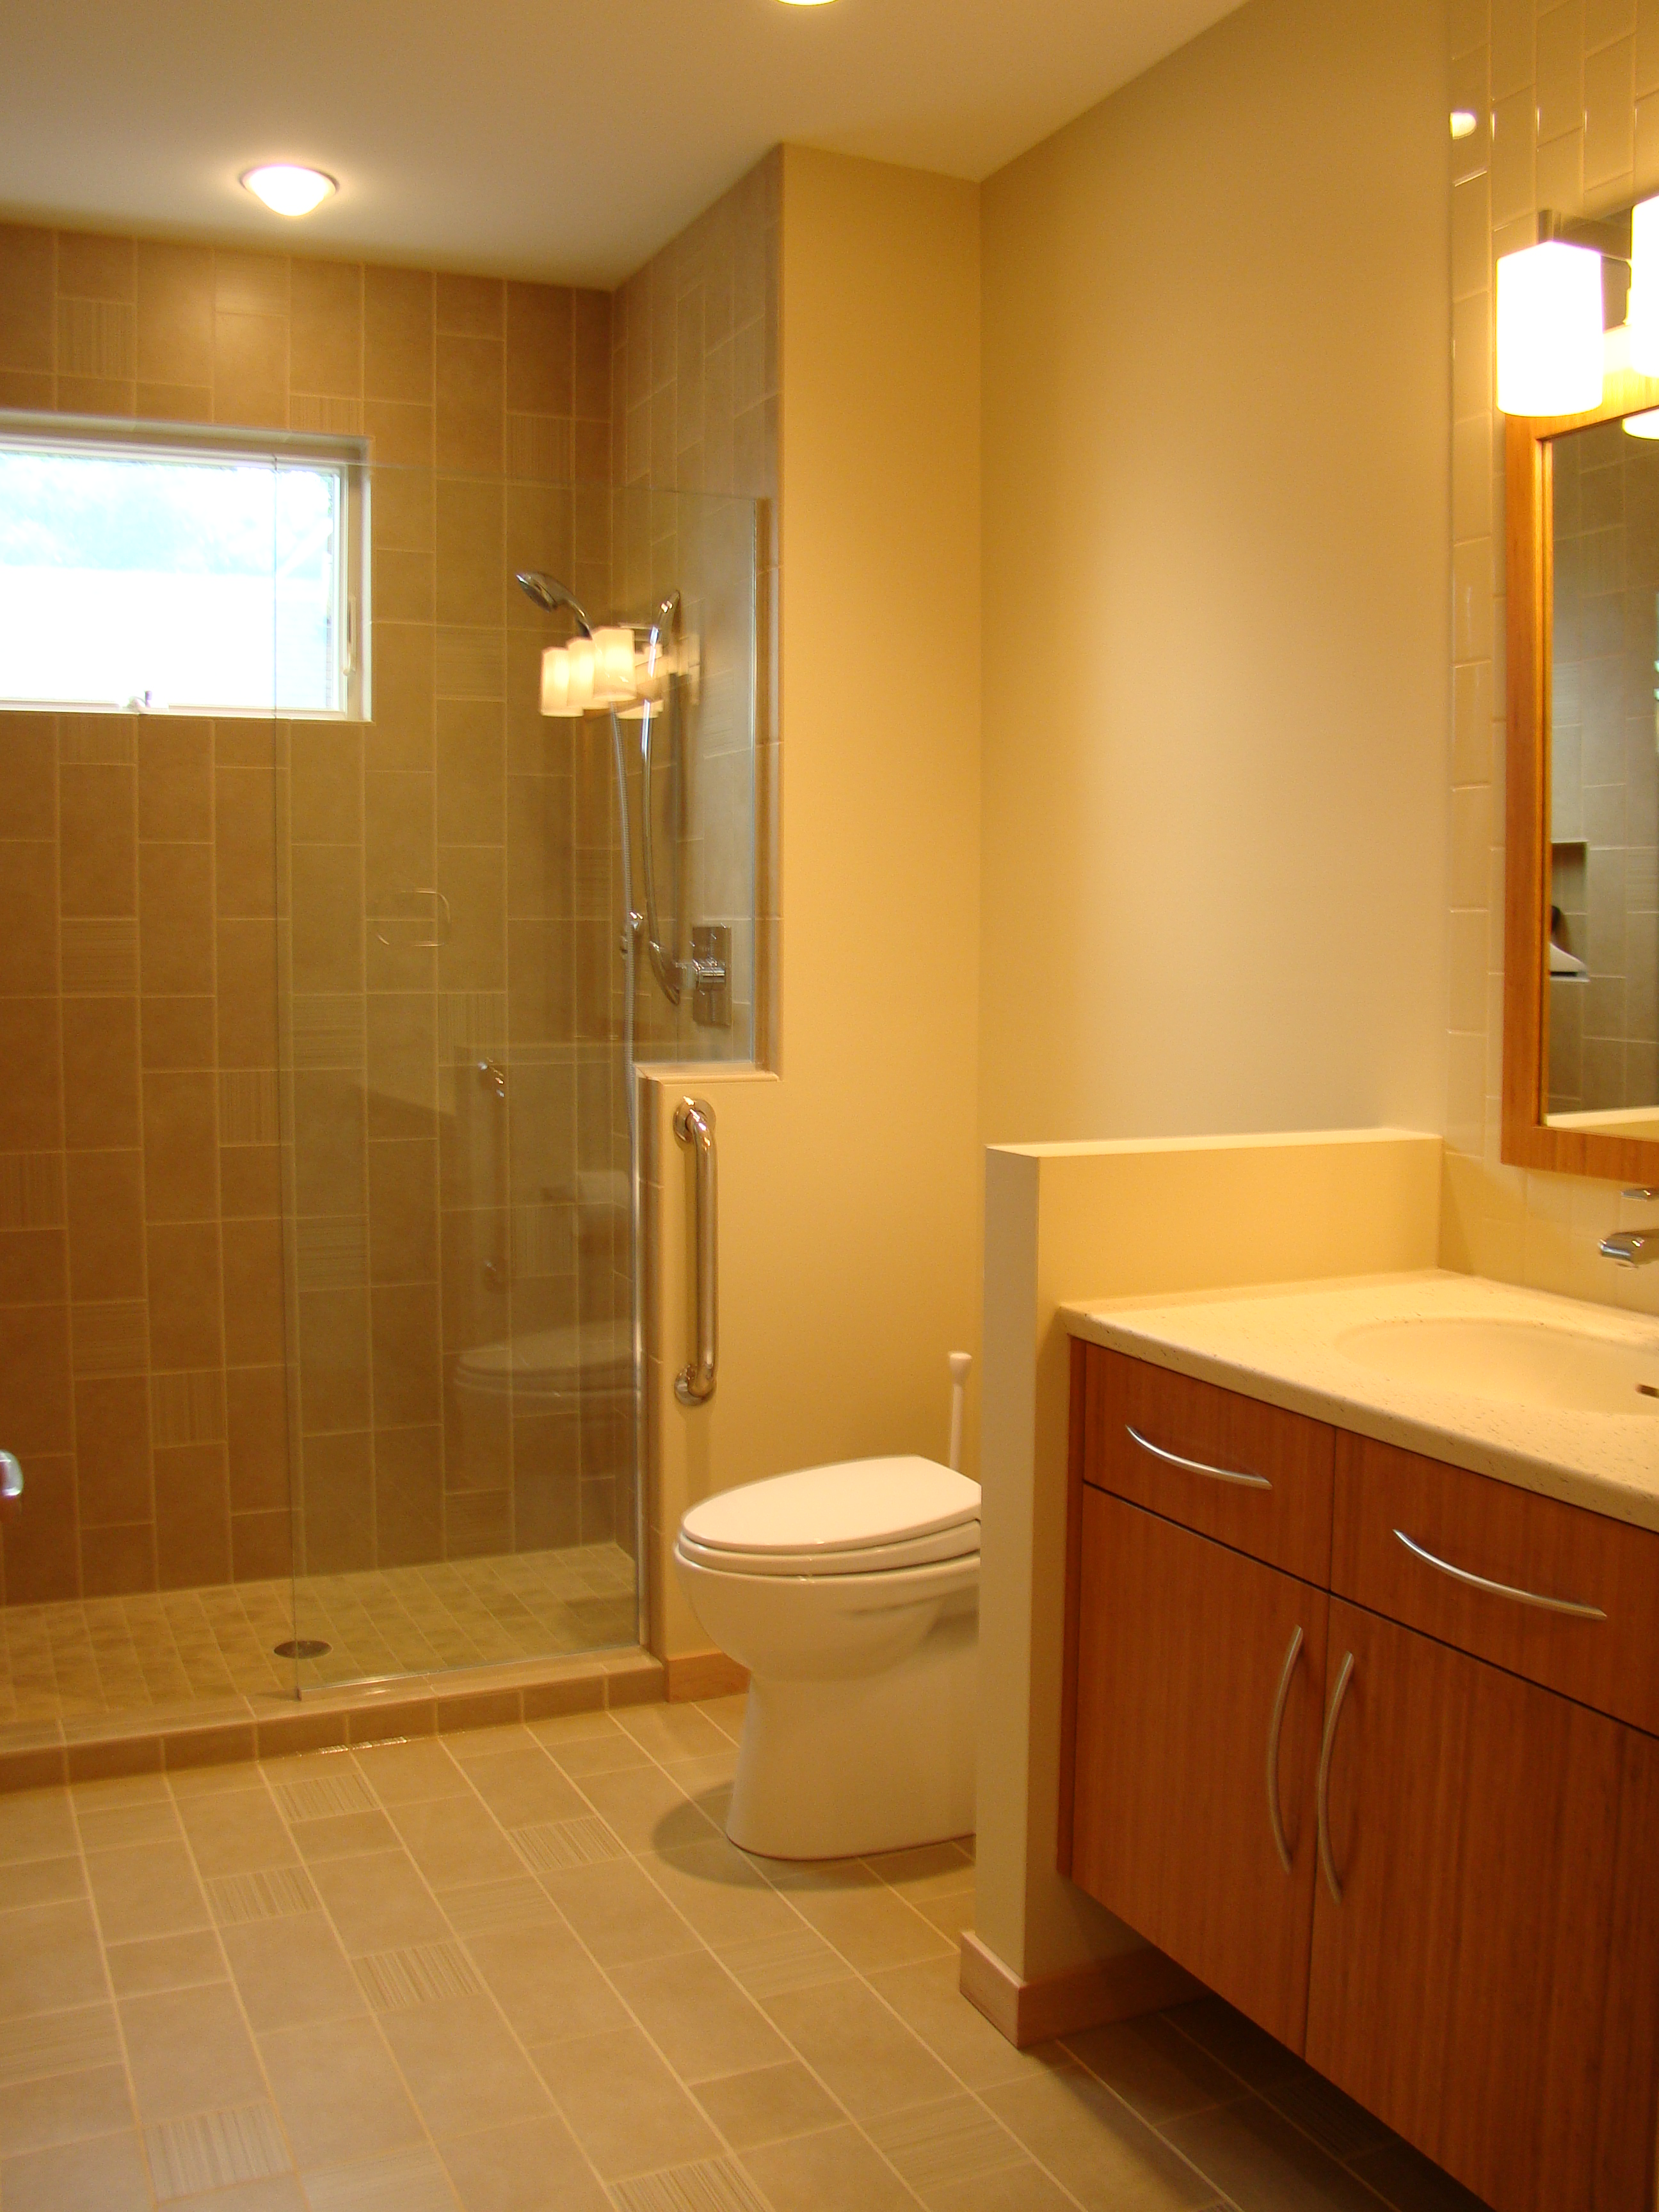 Universal Design In Bathroom : What is universal design a little help